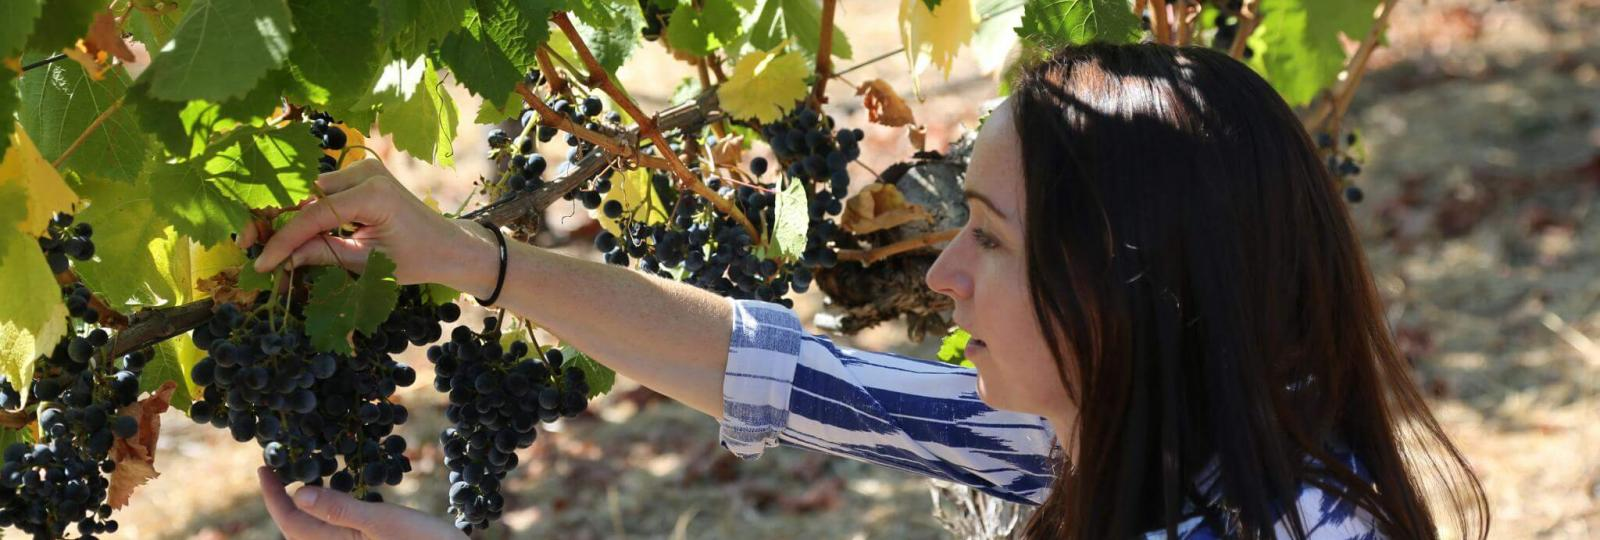 Kristina in the vineyard